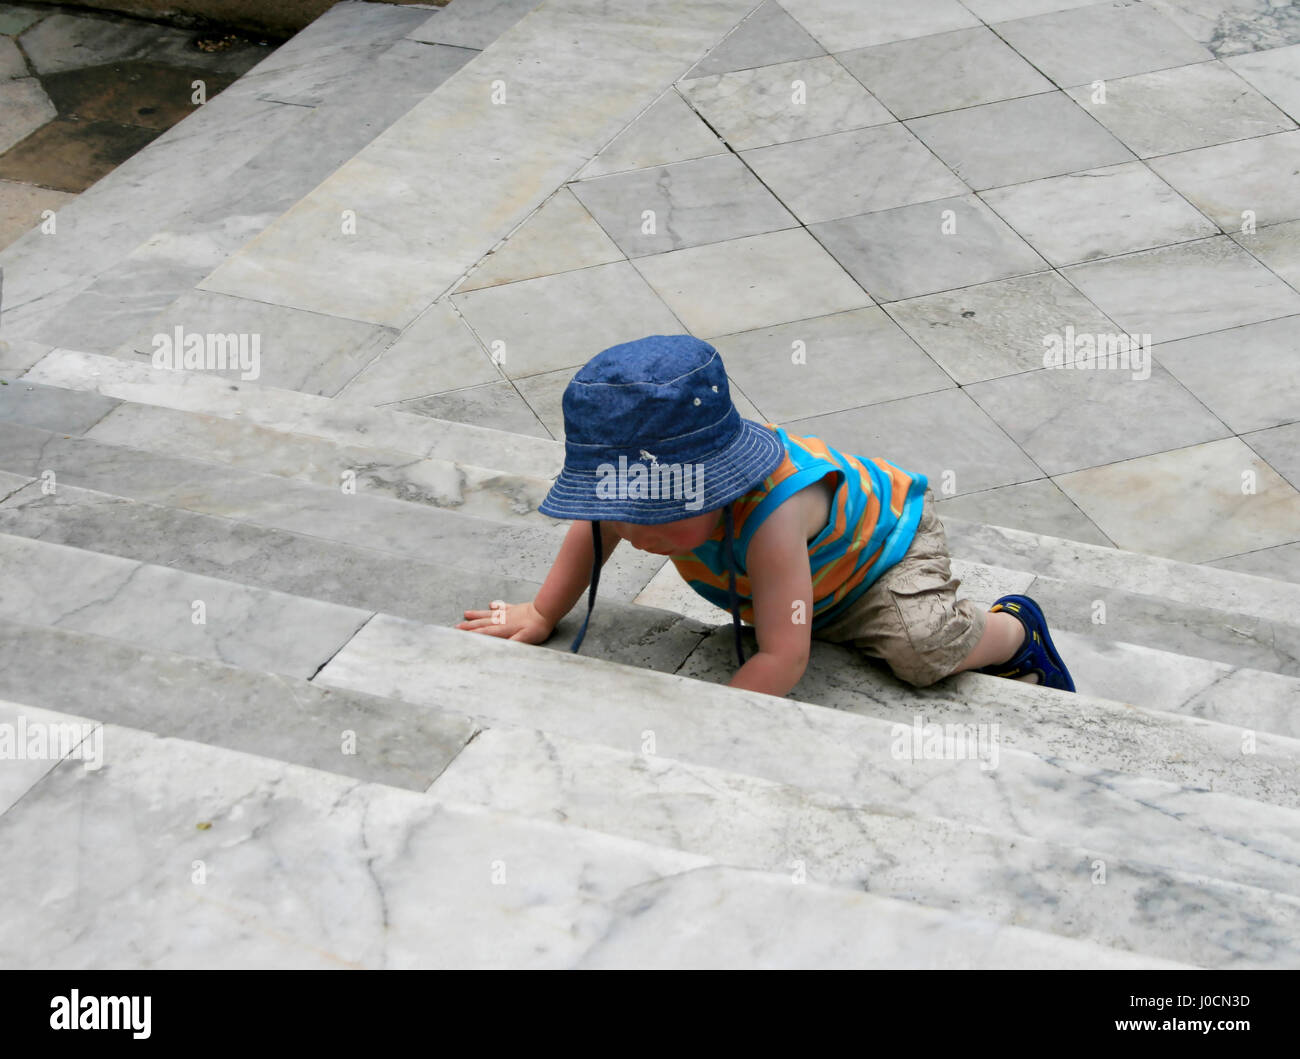 A little baby clambering up the big marble stairs - Stock Image